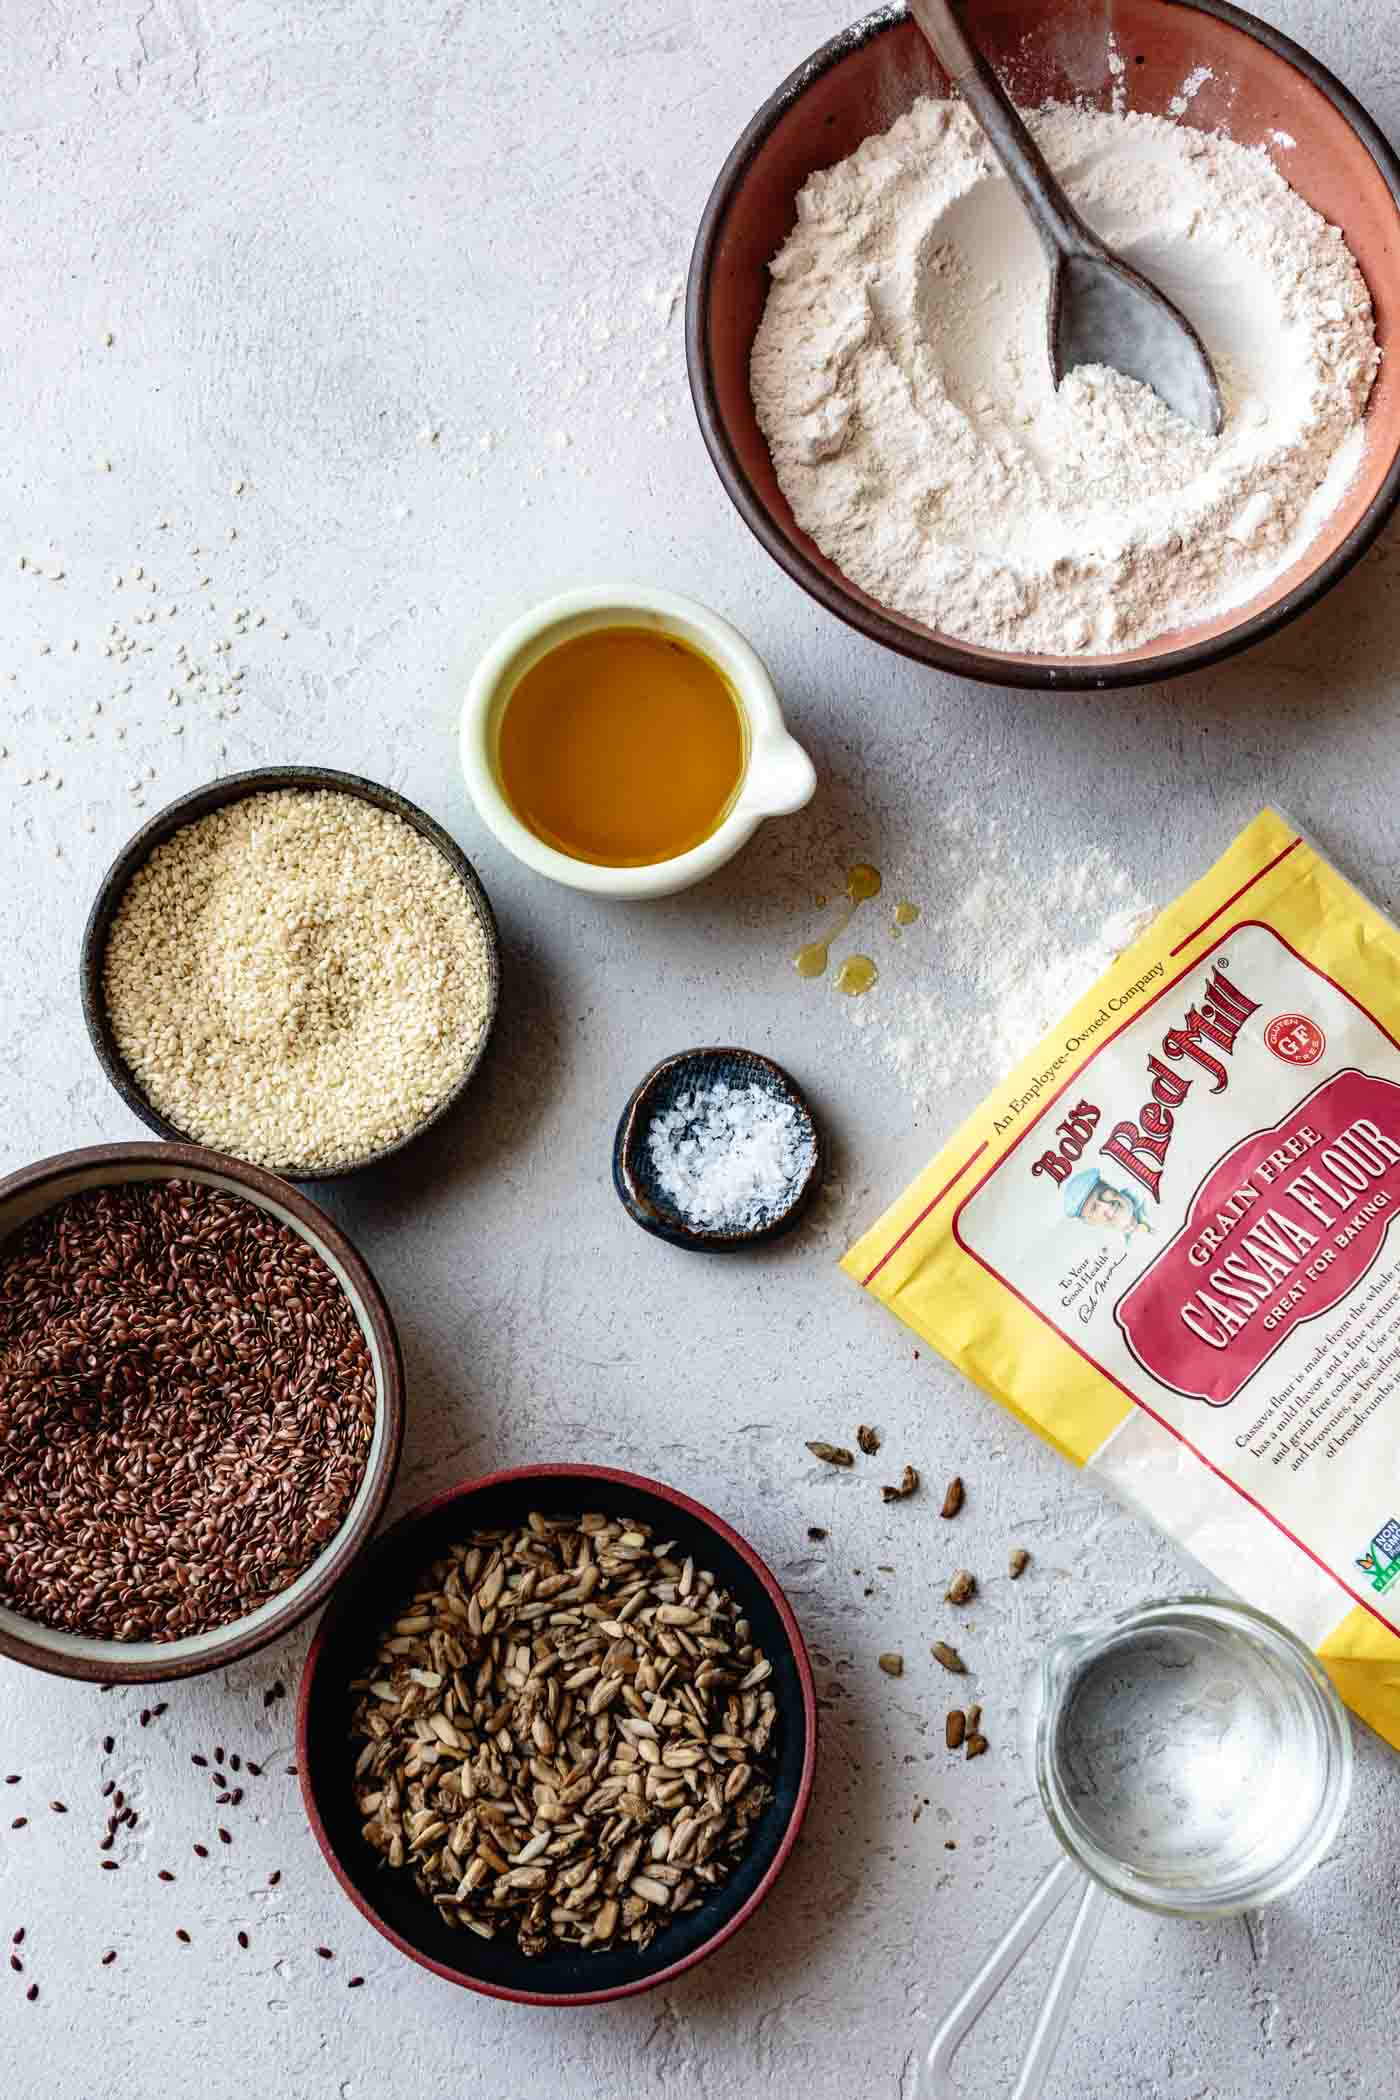 ingredients for gluten-free crackers recipe with cassava flour